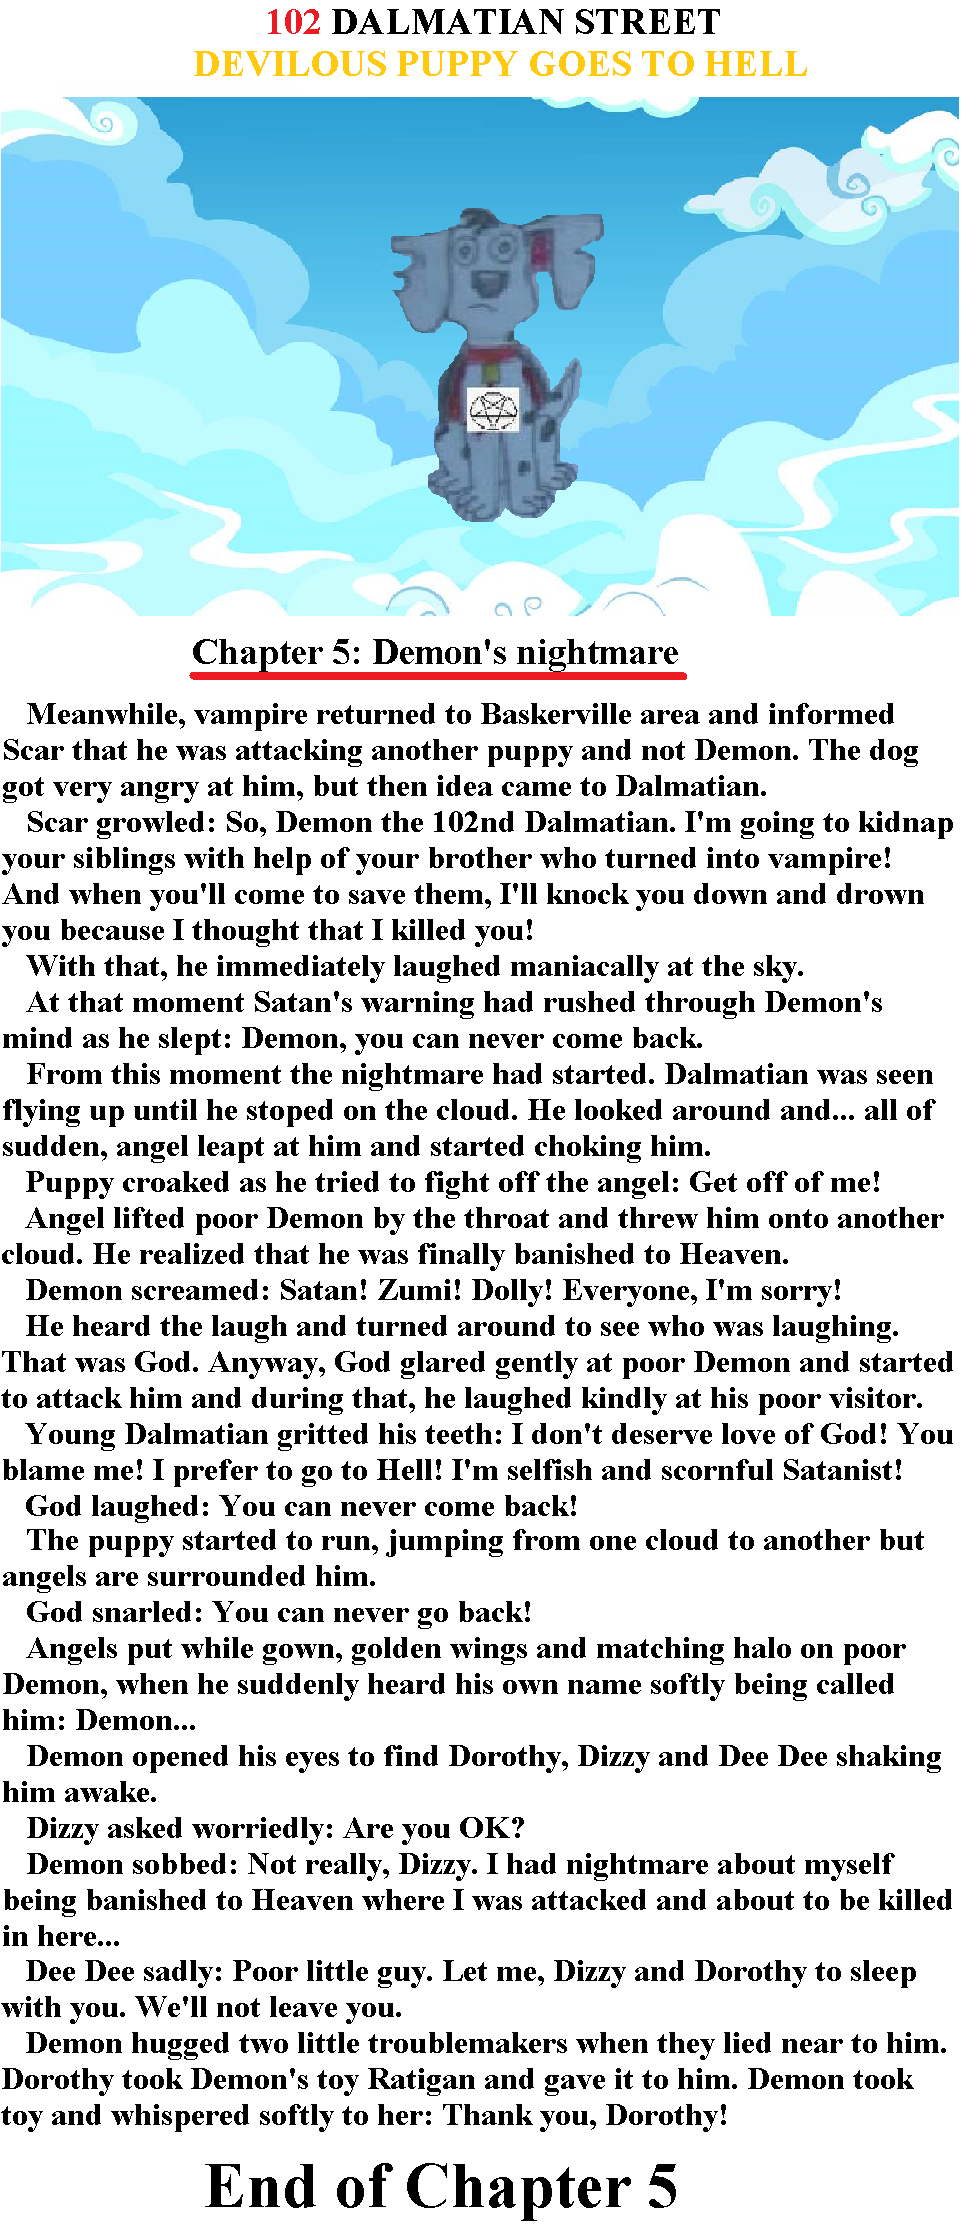 102DS: Devilous puppy goes to Hell - Ch 5